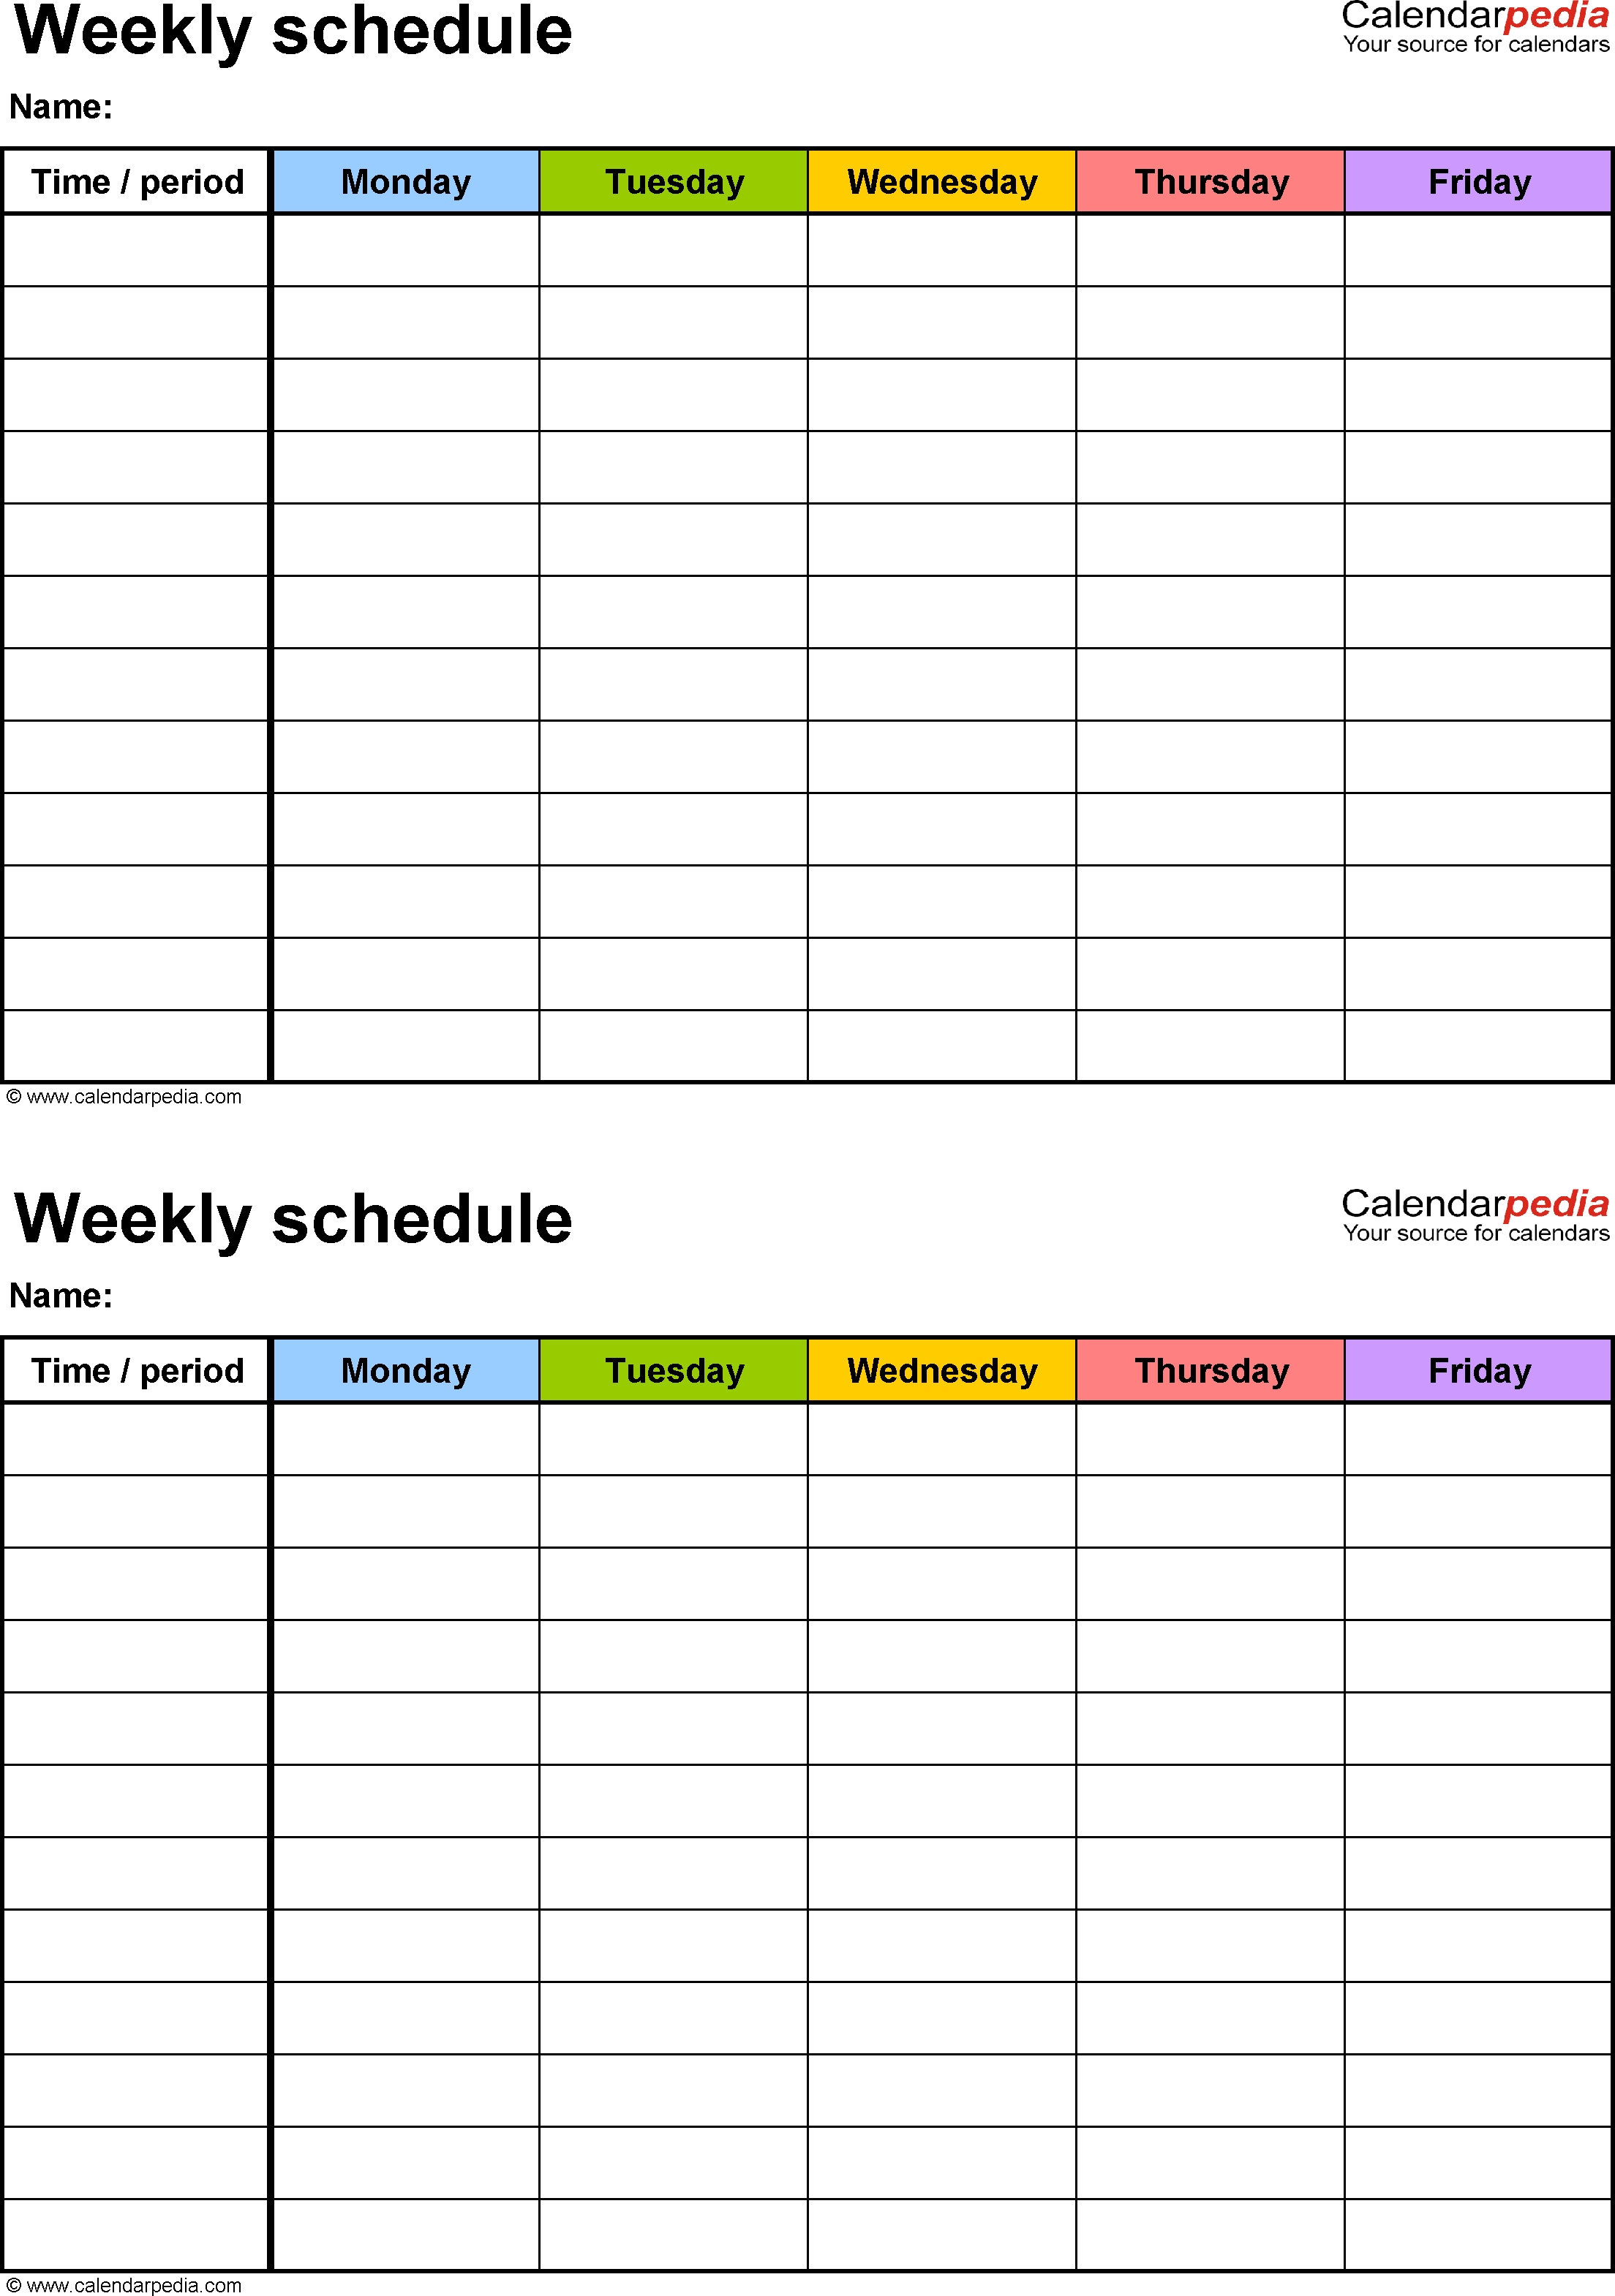 Free Weekly Schedule Templates For Excel - 18 Templates intended for Excel Day Planner Template Free